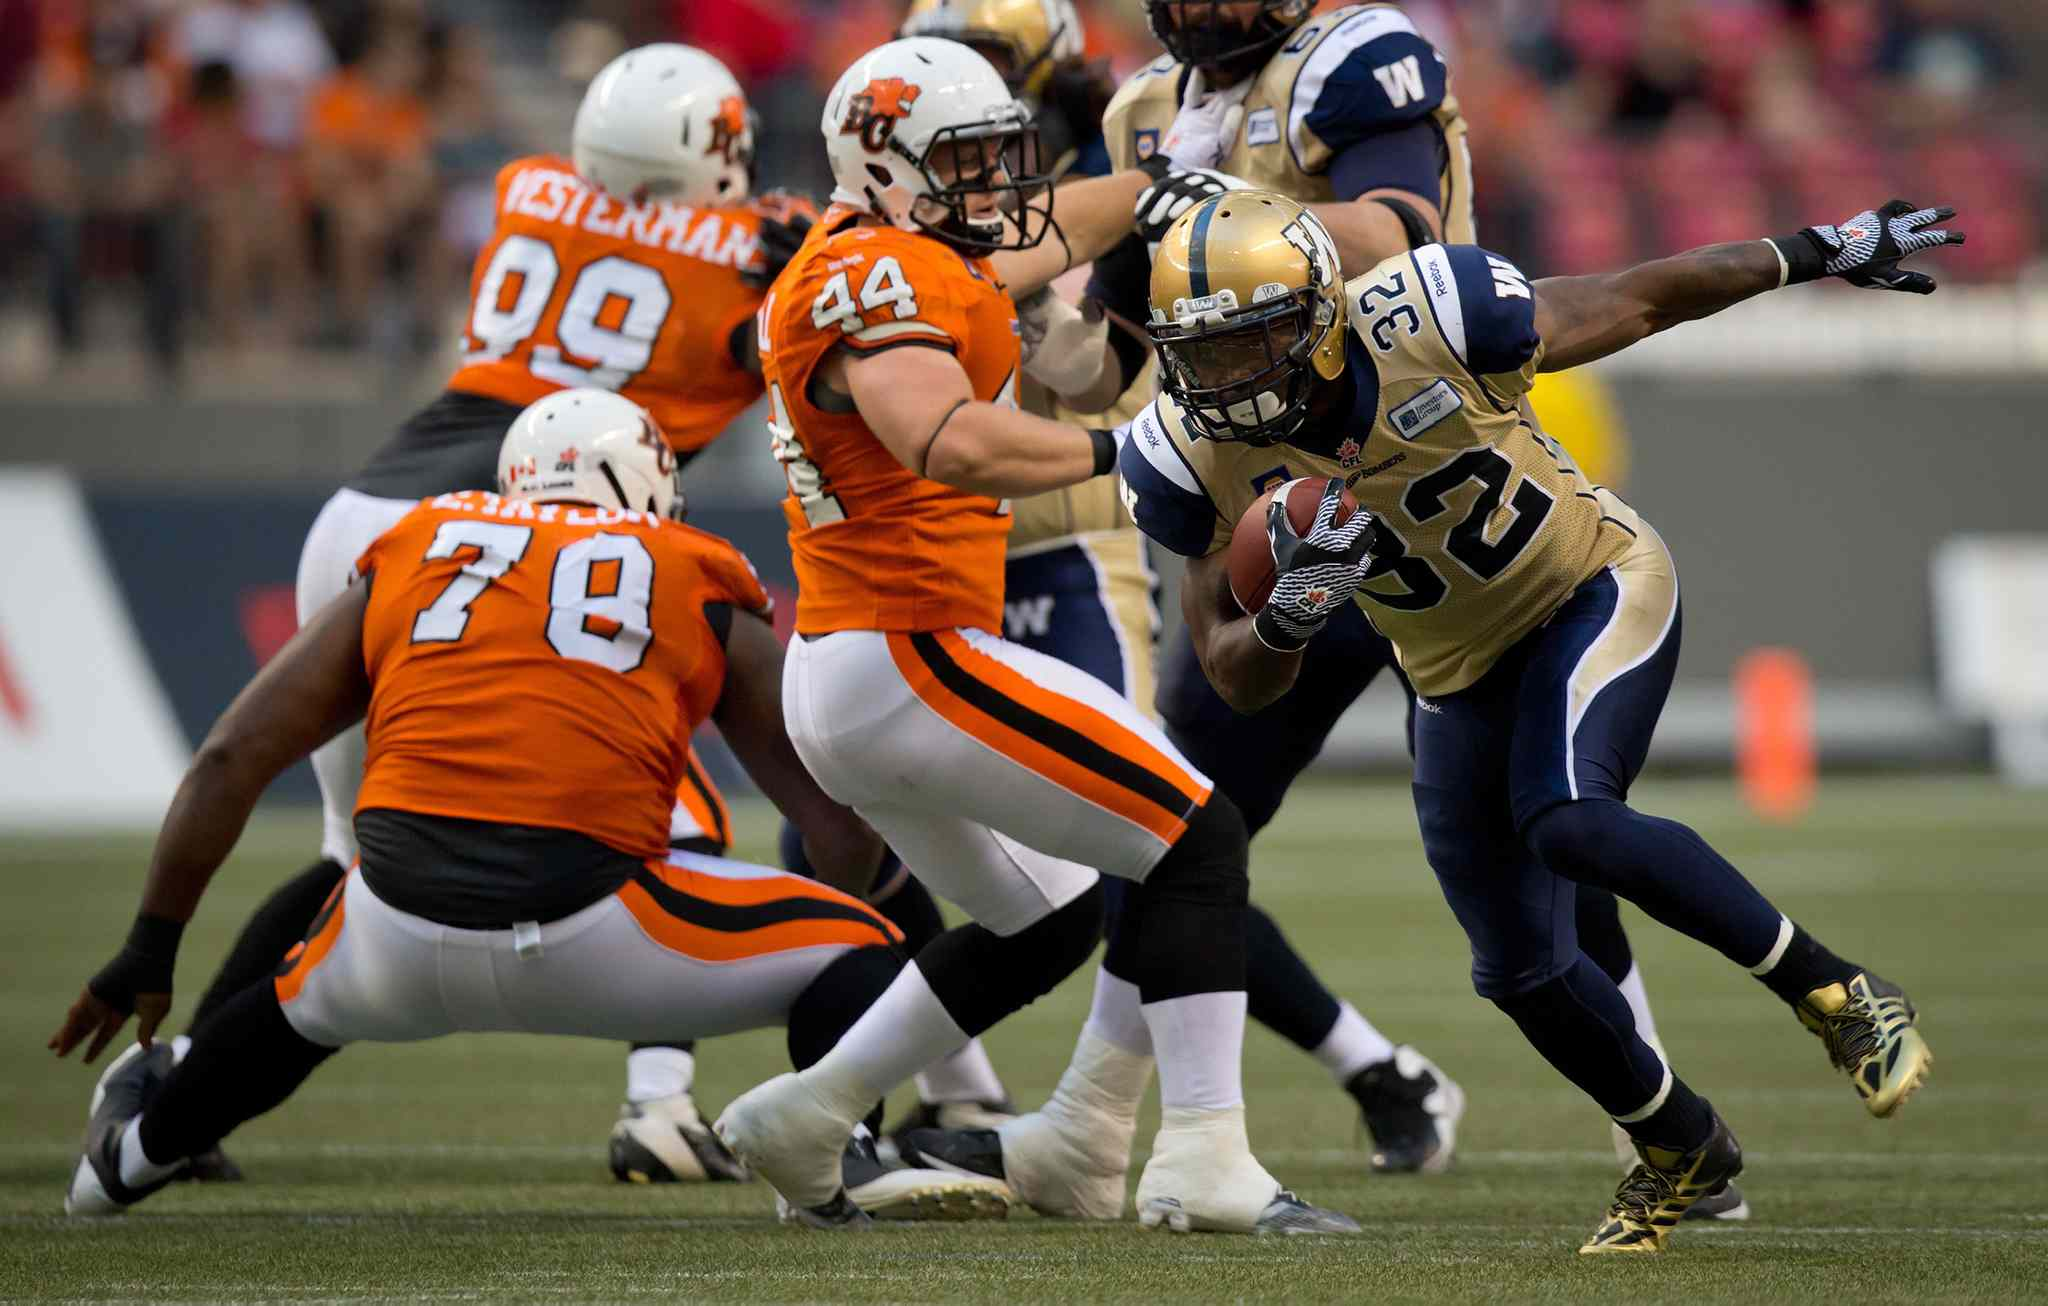 Winnipeg Blue Bombers' Nic Grigsby (32) runs the ball past B.C. Lions' Adam Bighill (44) during the first half of Friday's game.